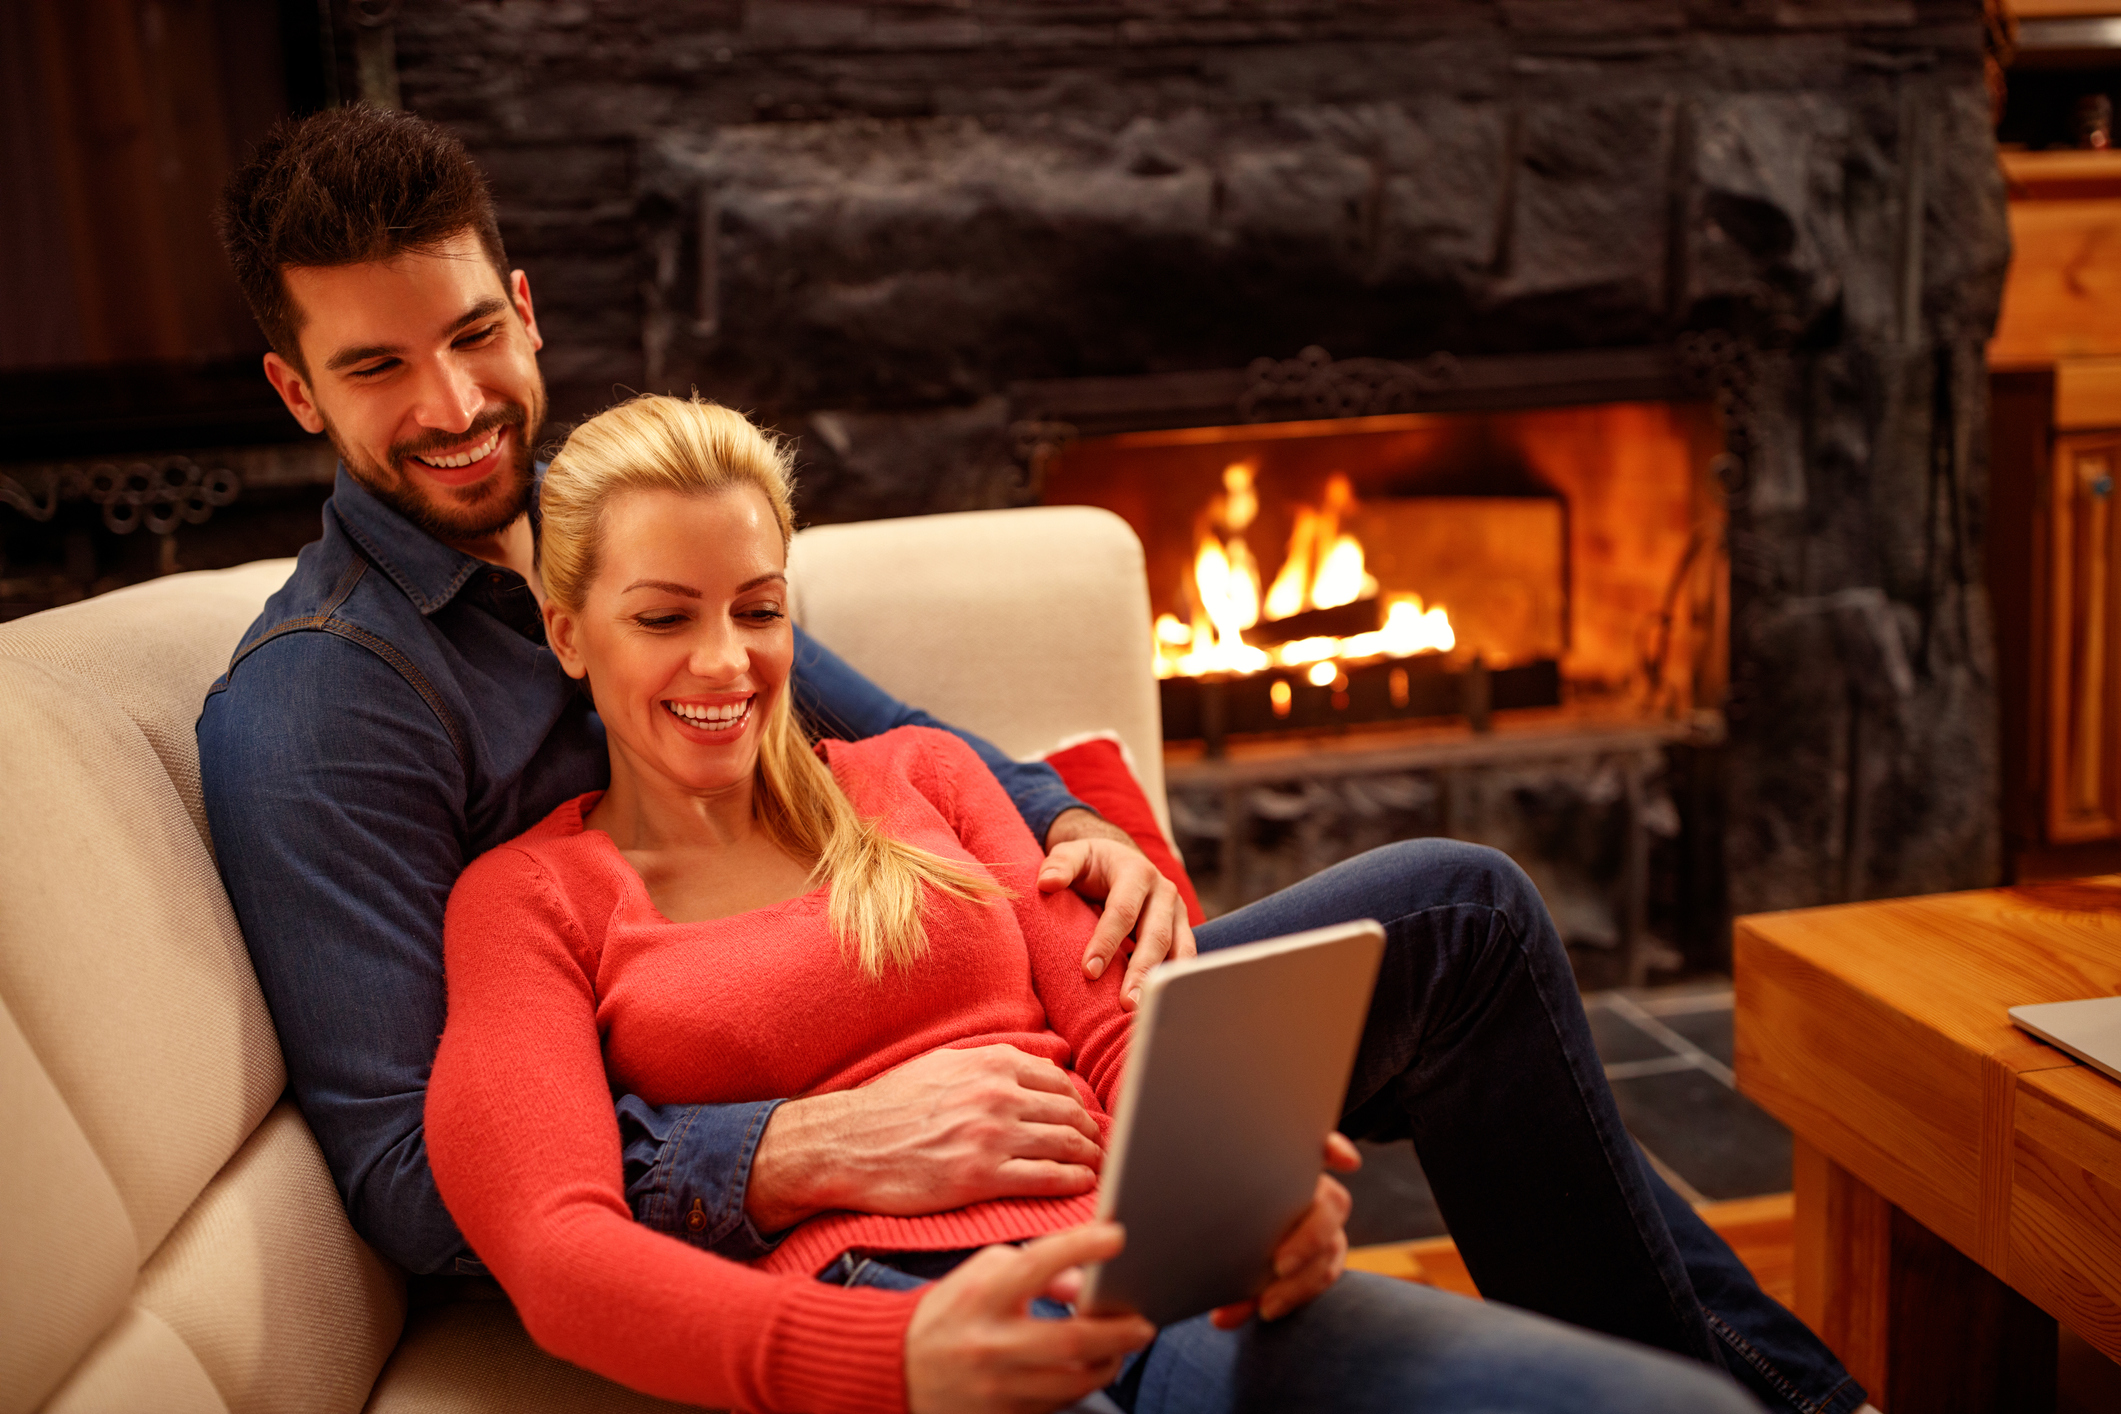 Man and woman sitting on the couch looking at a tablet next to a fireplace